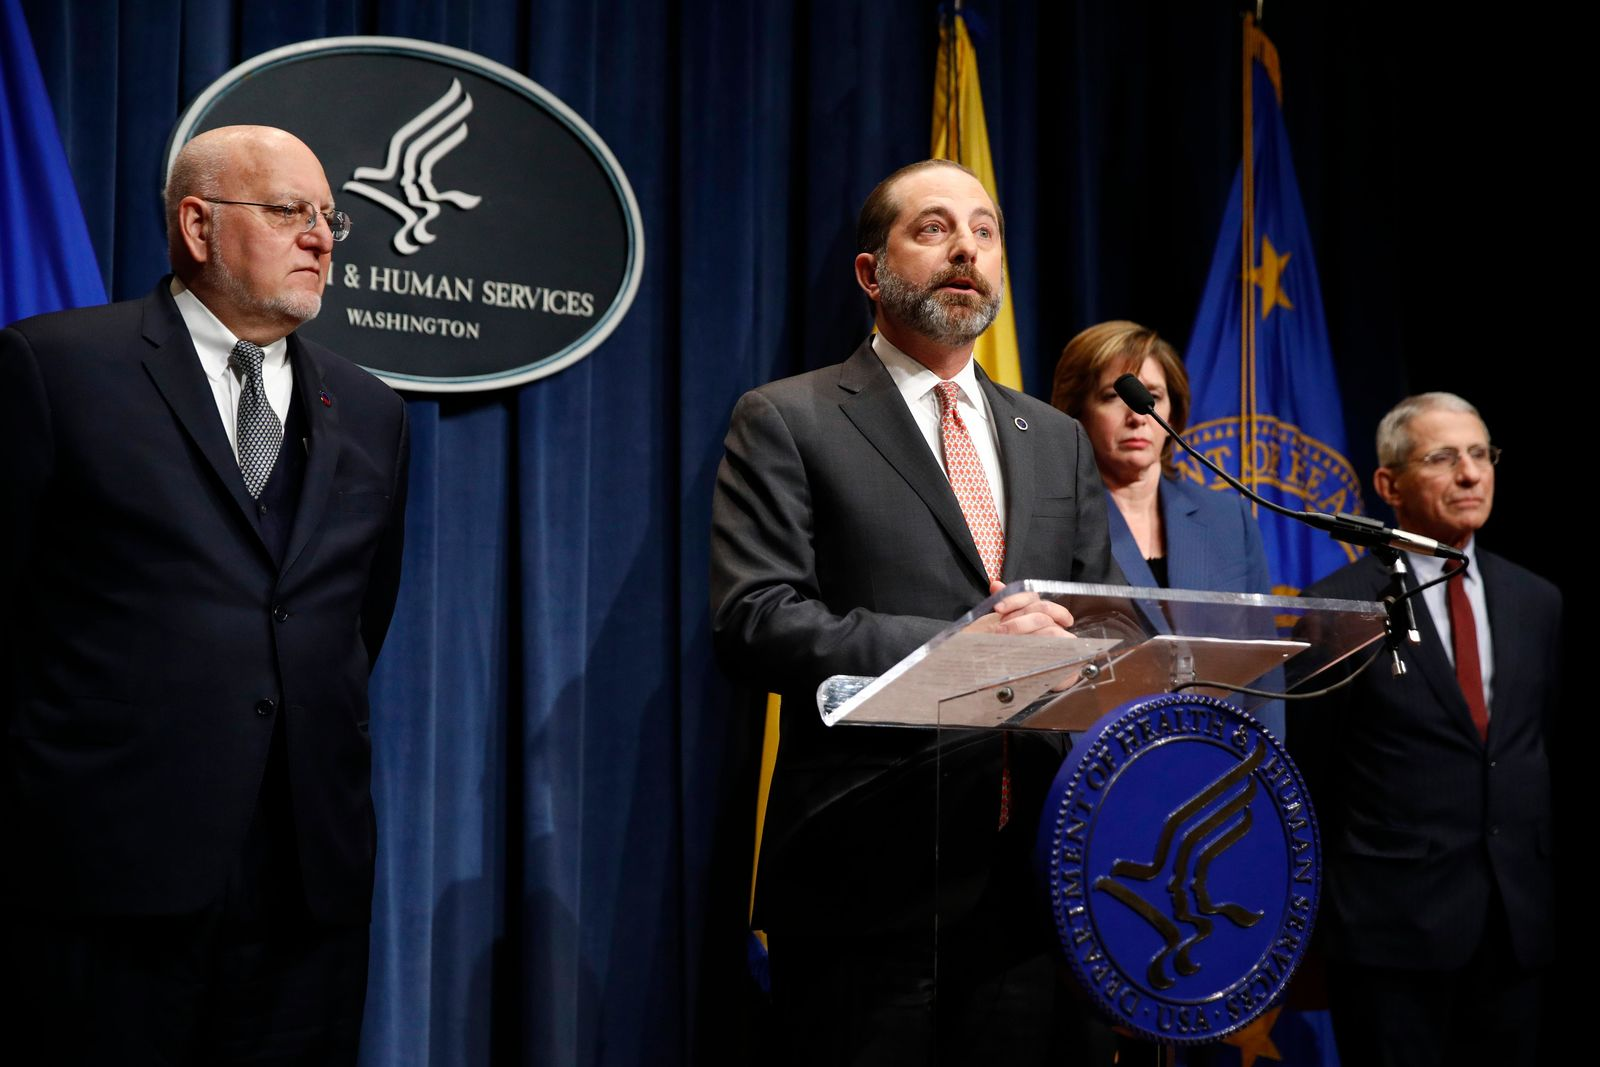 Health and Human Services Secretary Alex Azar speaks at a news conference about the federal government's response to a virus outbreak originating in China, Tuesday, Jan. 28, 2020, in Washington. Standing alongside Azar are Centers for Disease Control and Prevention Director Robert Redfield, from left, National Center for Immunization and Respiratory Disease Director Nancy Messonnier and National Institute of Allergy and Infectious Diseases Director Anthony Fauci. (AP Photo/Patrick Semansky)